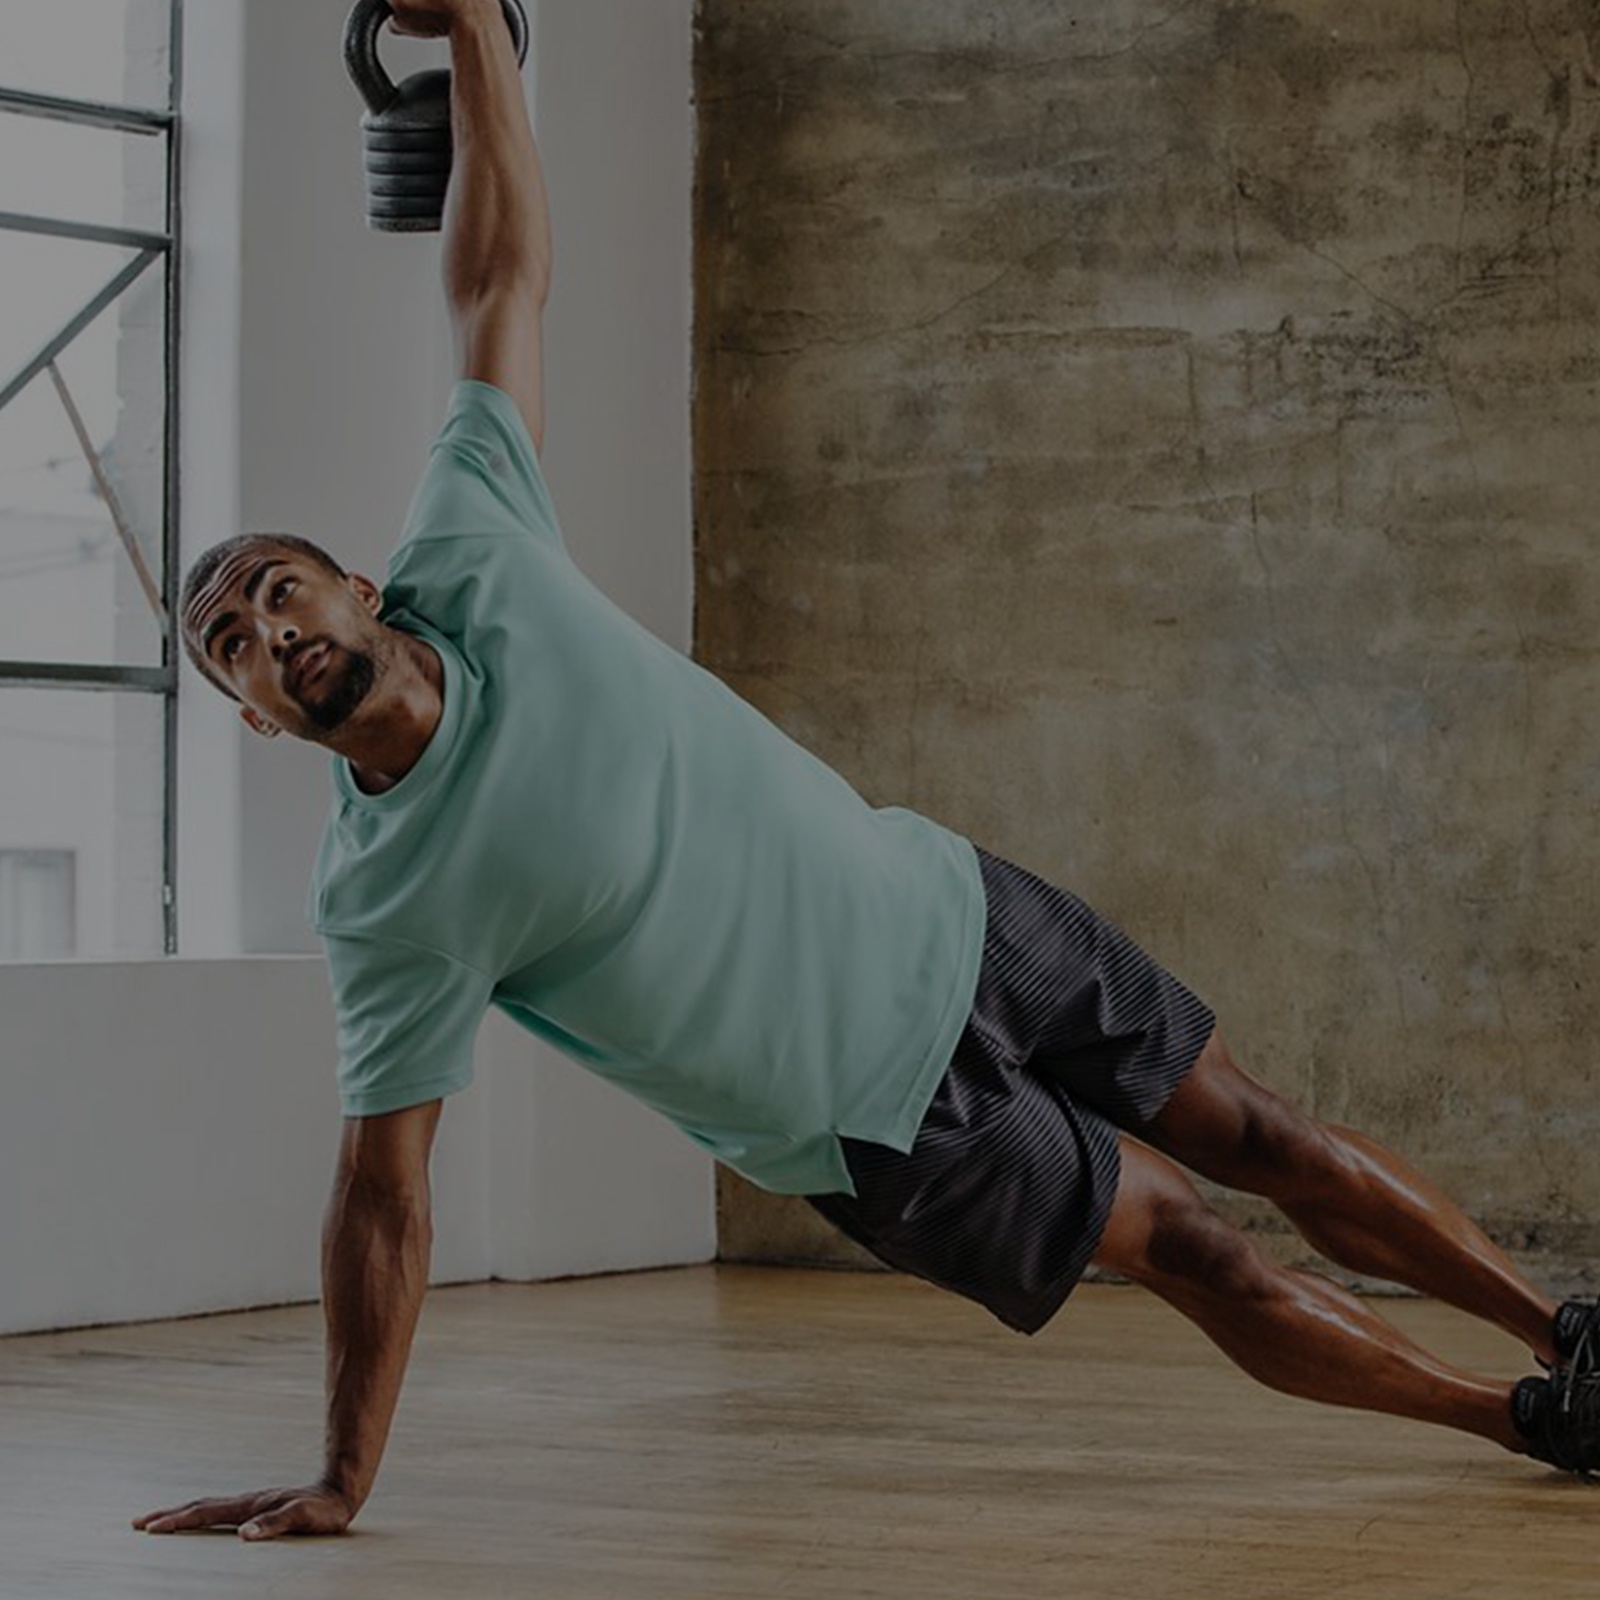 Man in a turquoise shirt and gray shorts doing a side plank.